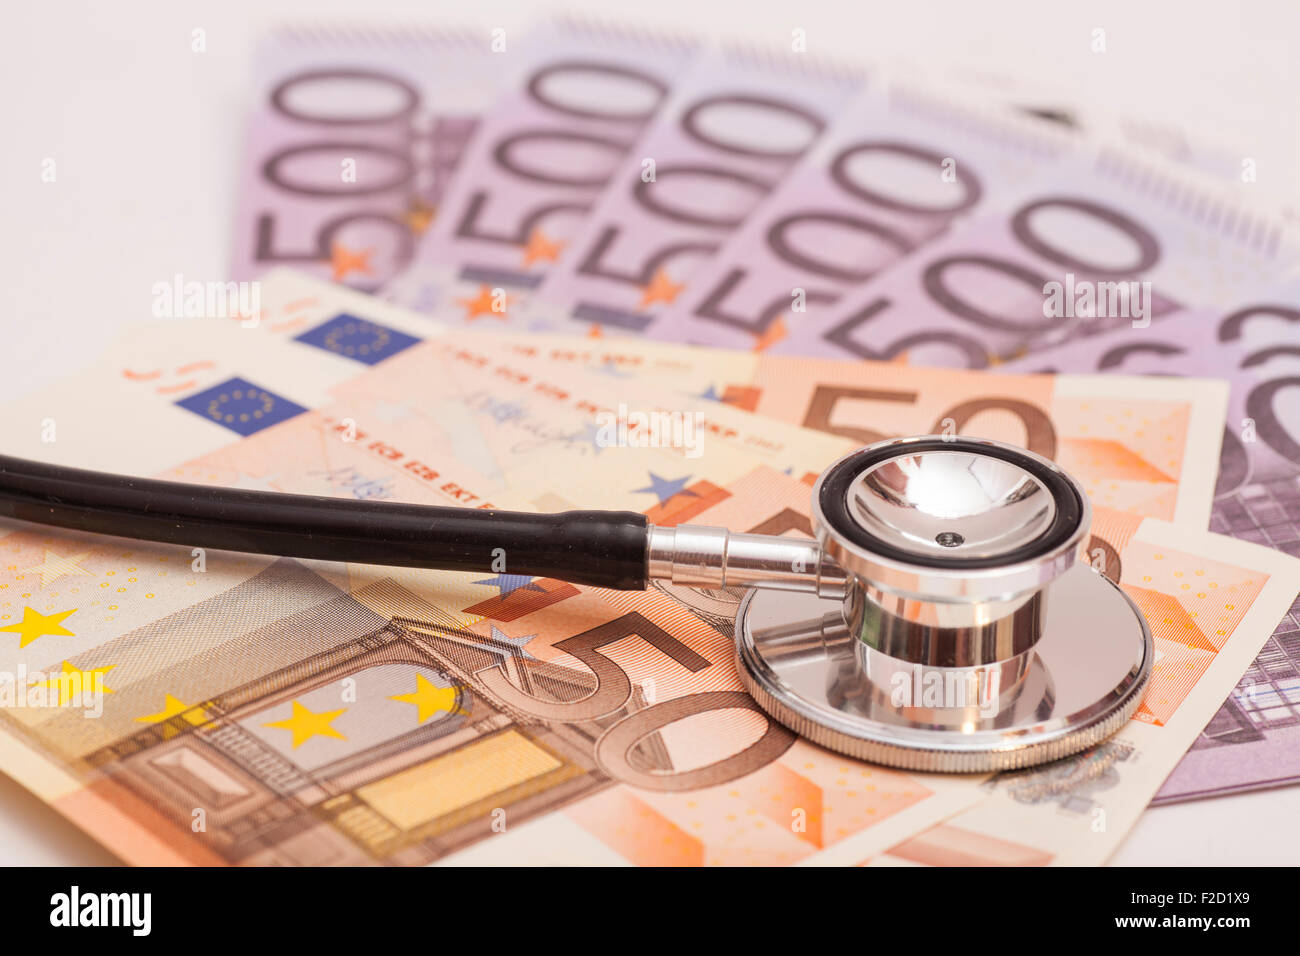 Euro banknotes and stethoscope - Stock Image